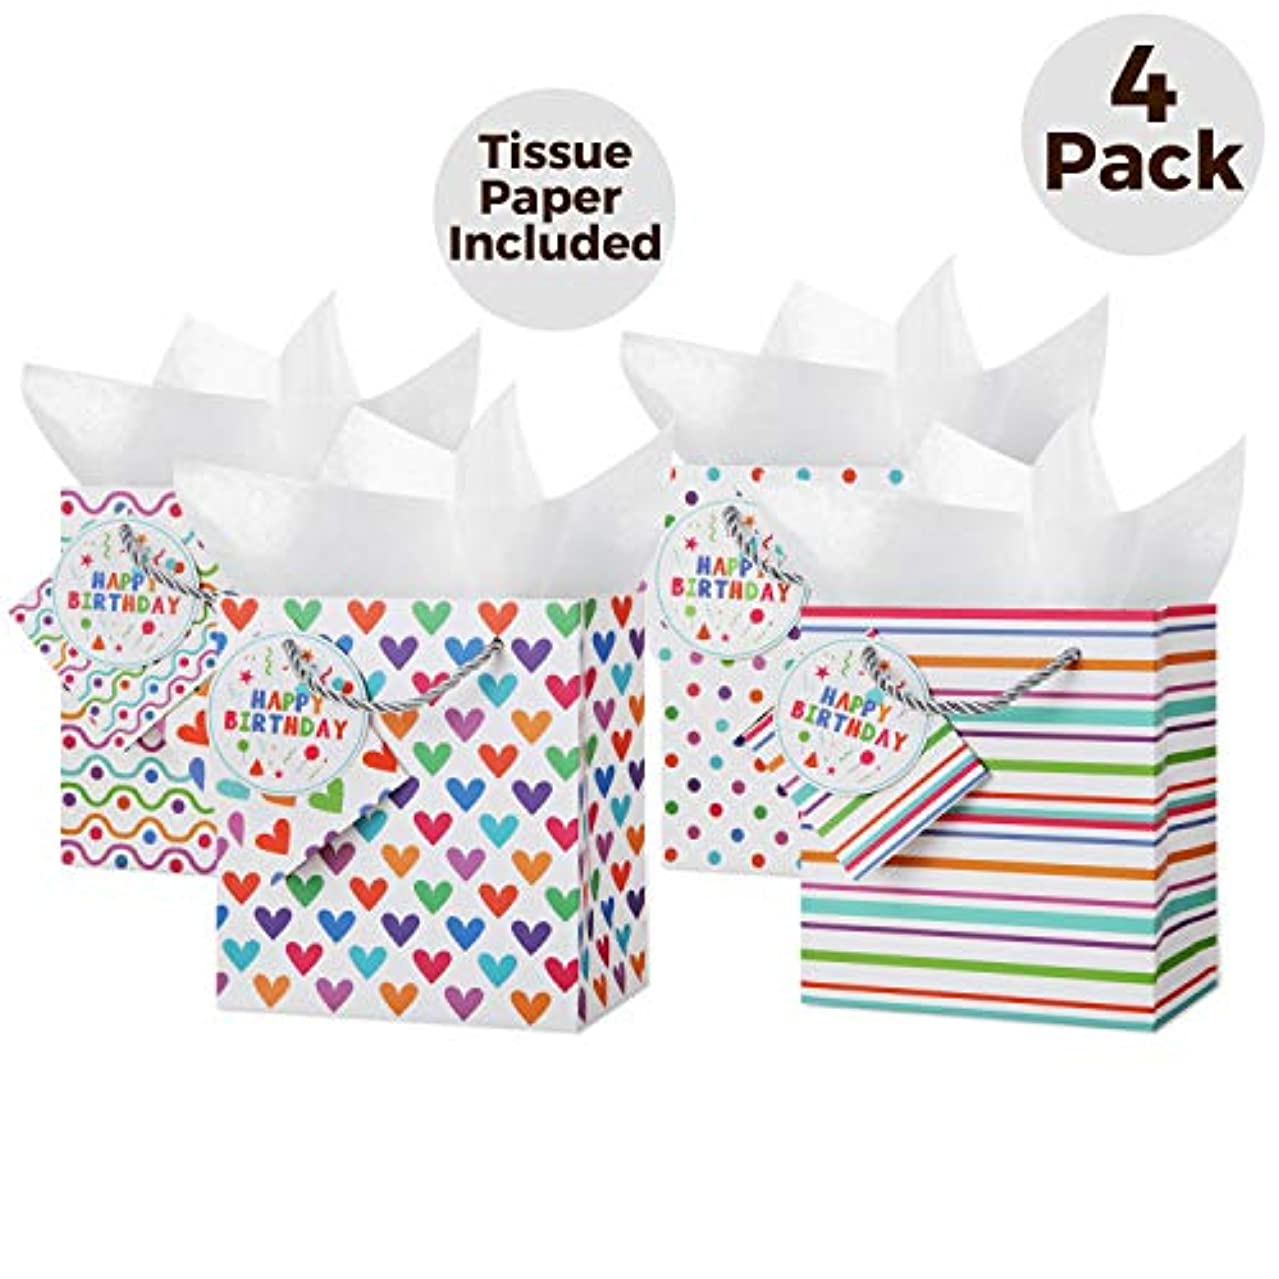 Small Gift Bags with Handles: (4 Pack) Assorted 4 Designs Gift Bags with Tissue Paper, Removable Card, Rope Style Handles, Gift Bags for Kids, Birthday Party Bags, Party Bags, Favor Bags, Small Gifts